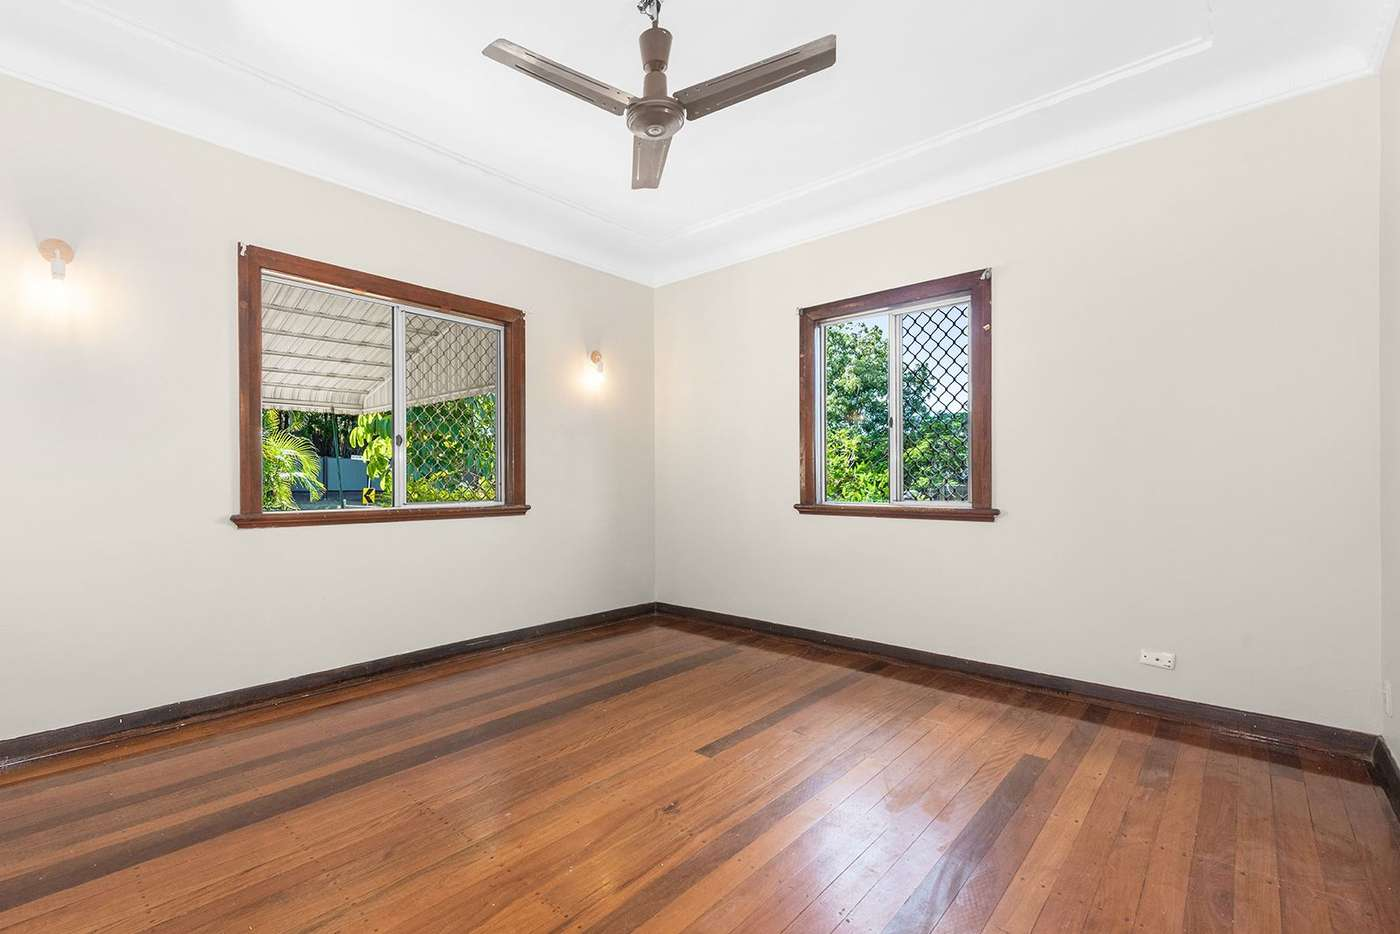 Sixth view of Homely house listing, 235 Agnew Street, Seven Hills QLD 4170